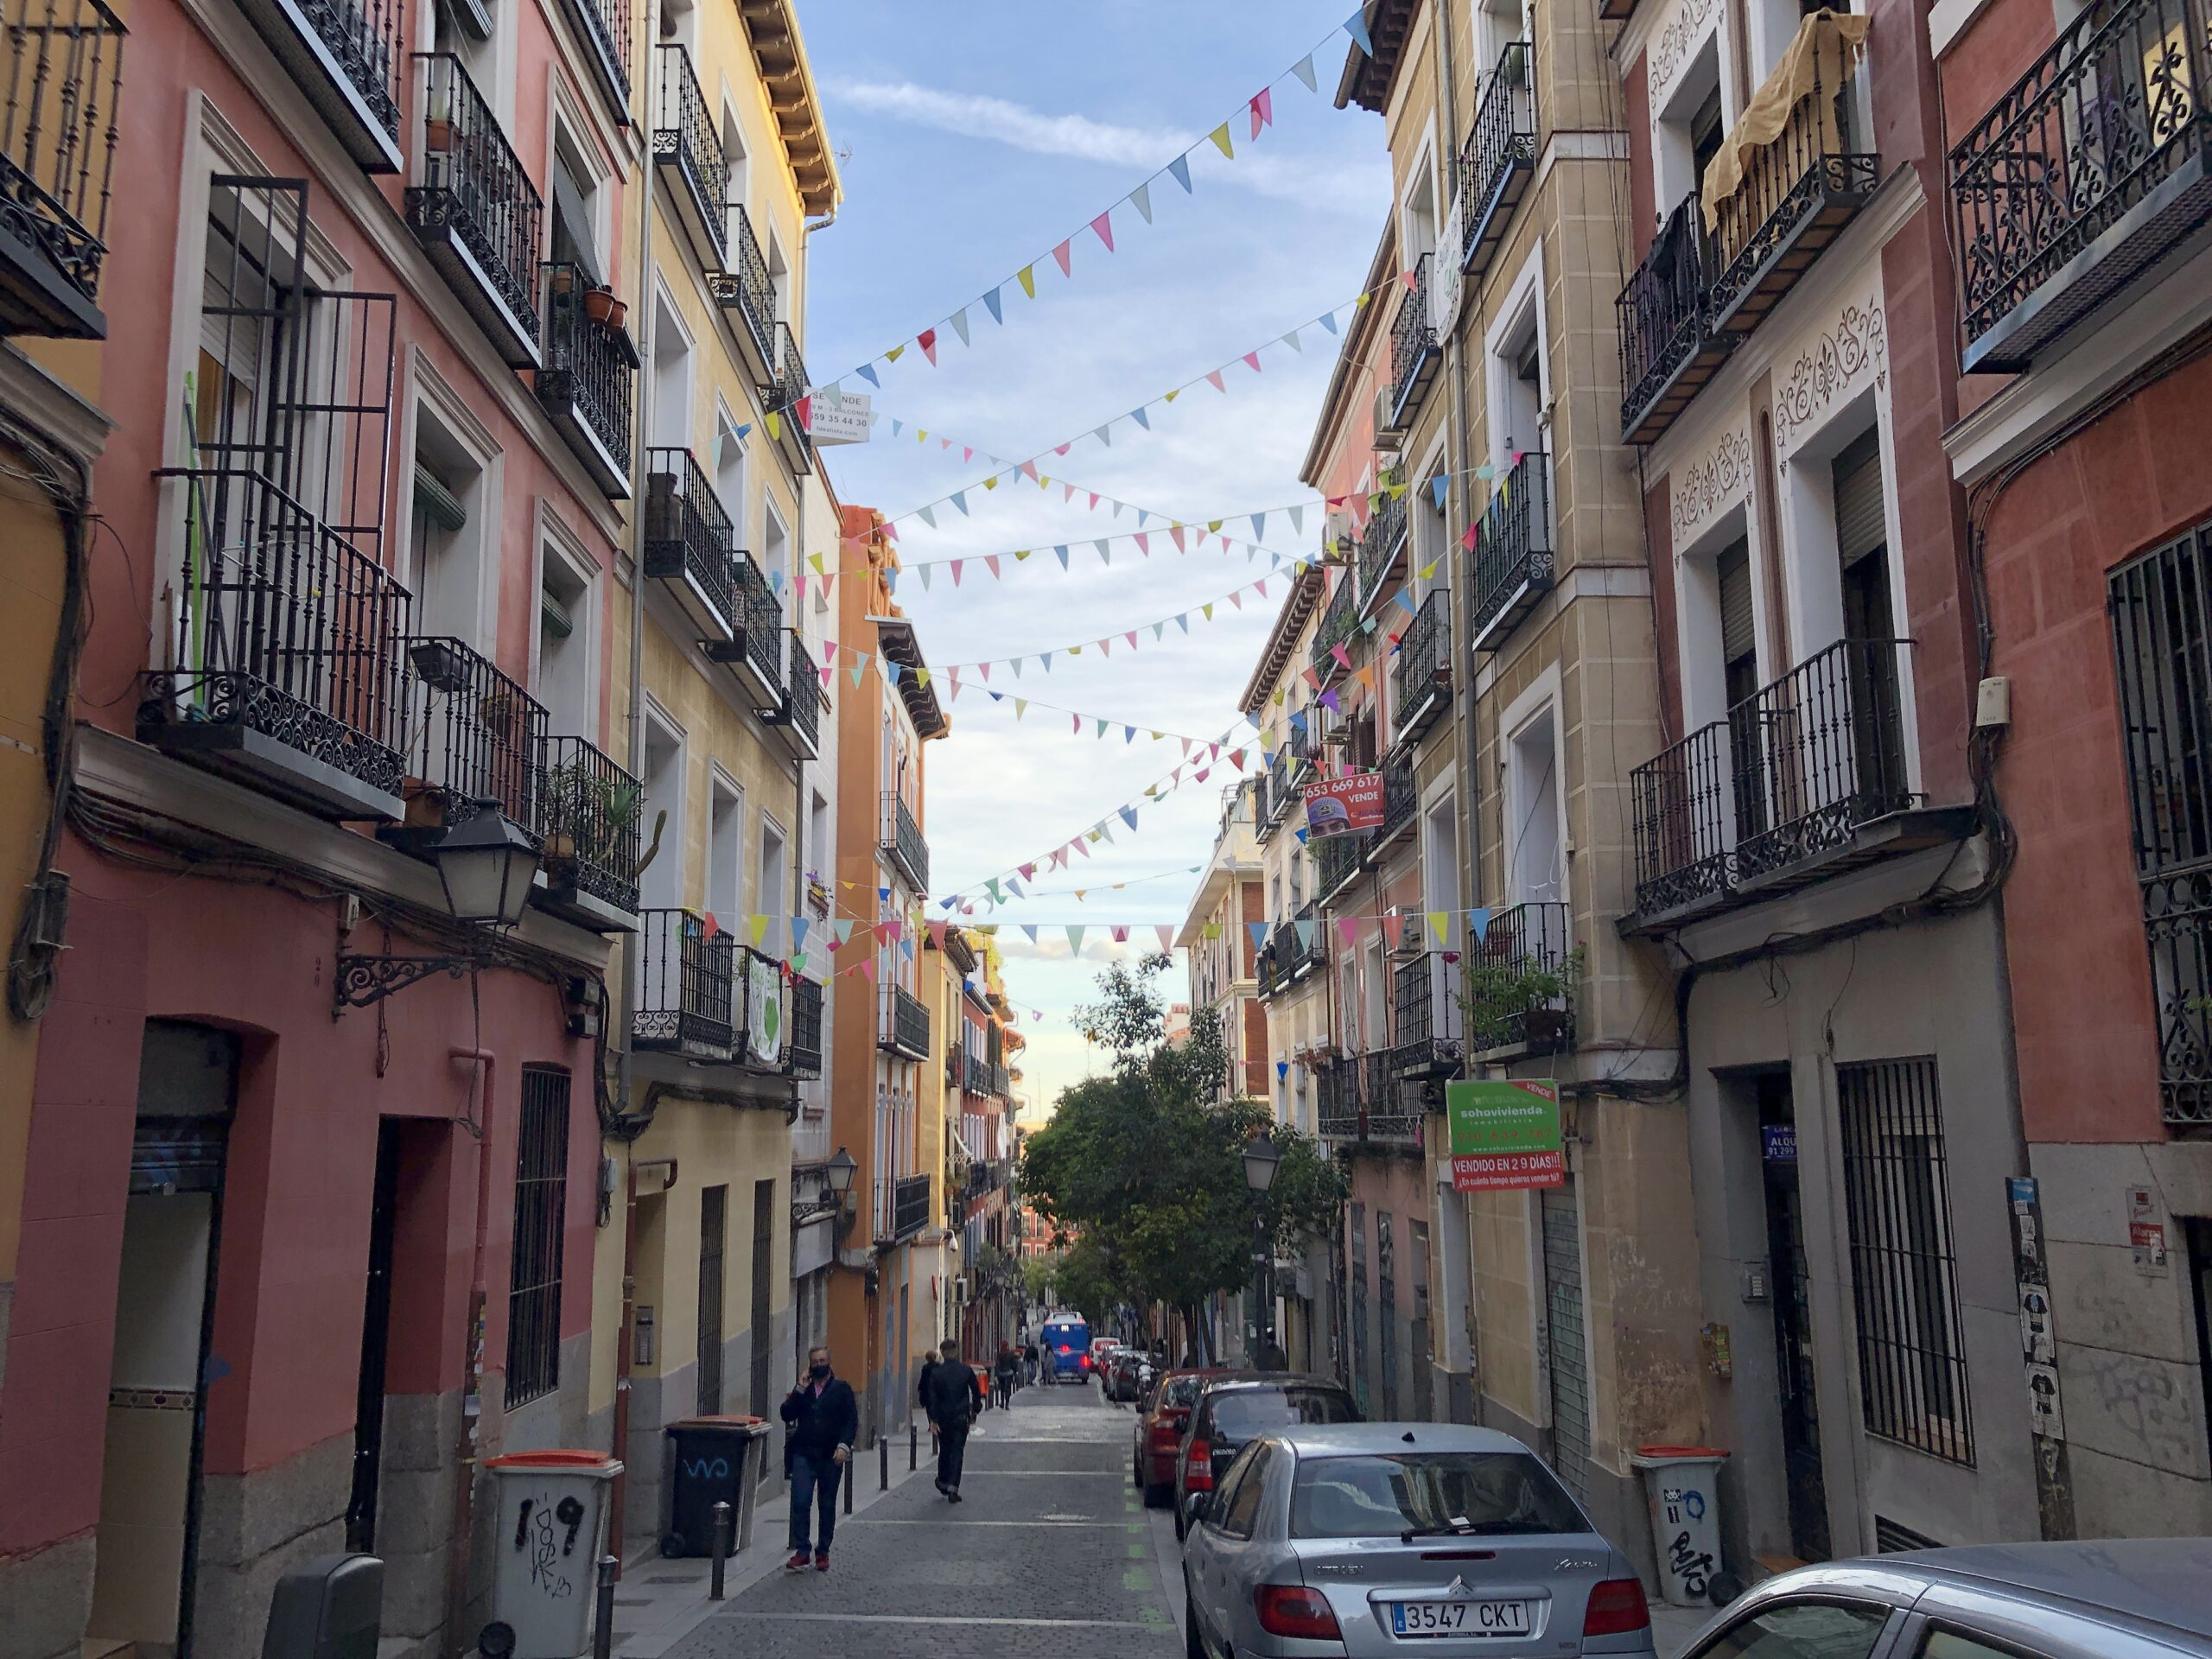 Multicoloured flags span a street with colourful facades in the south of Madrid.